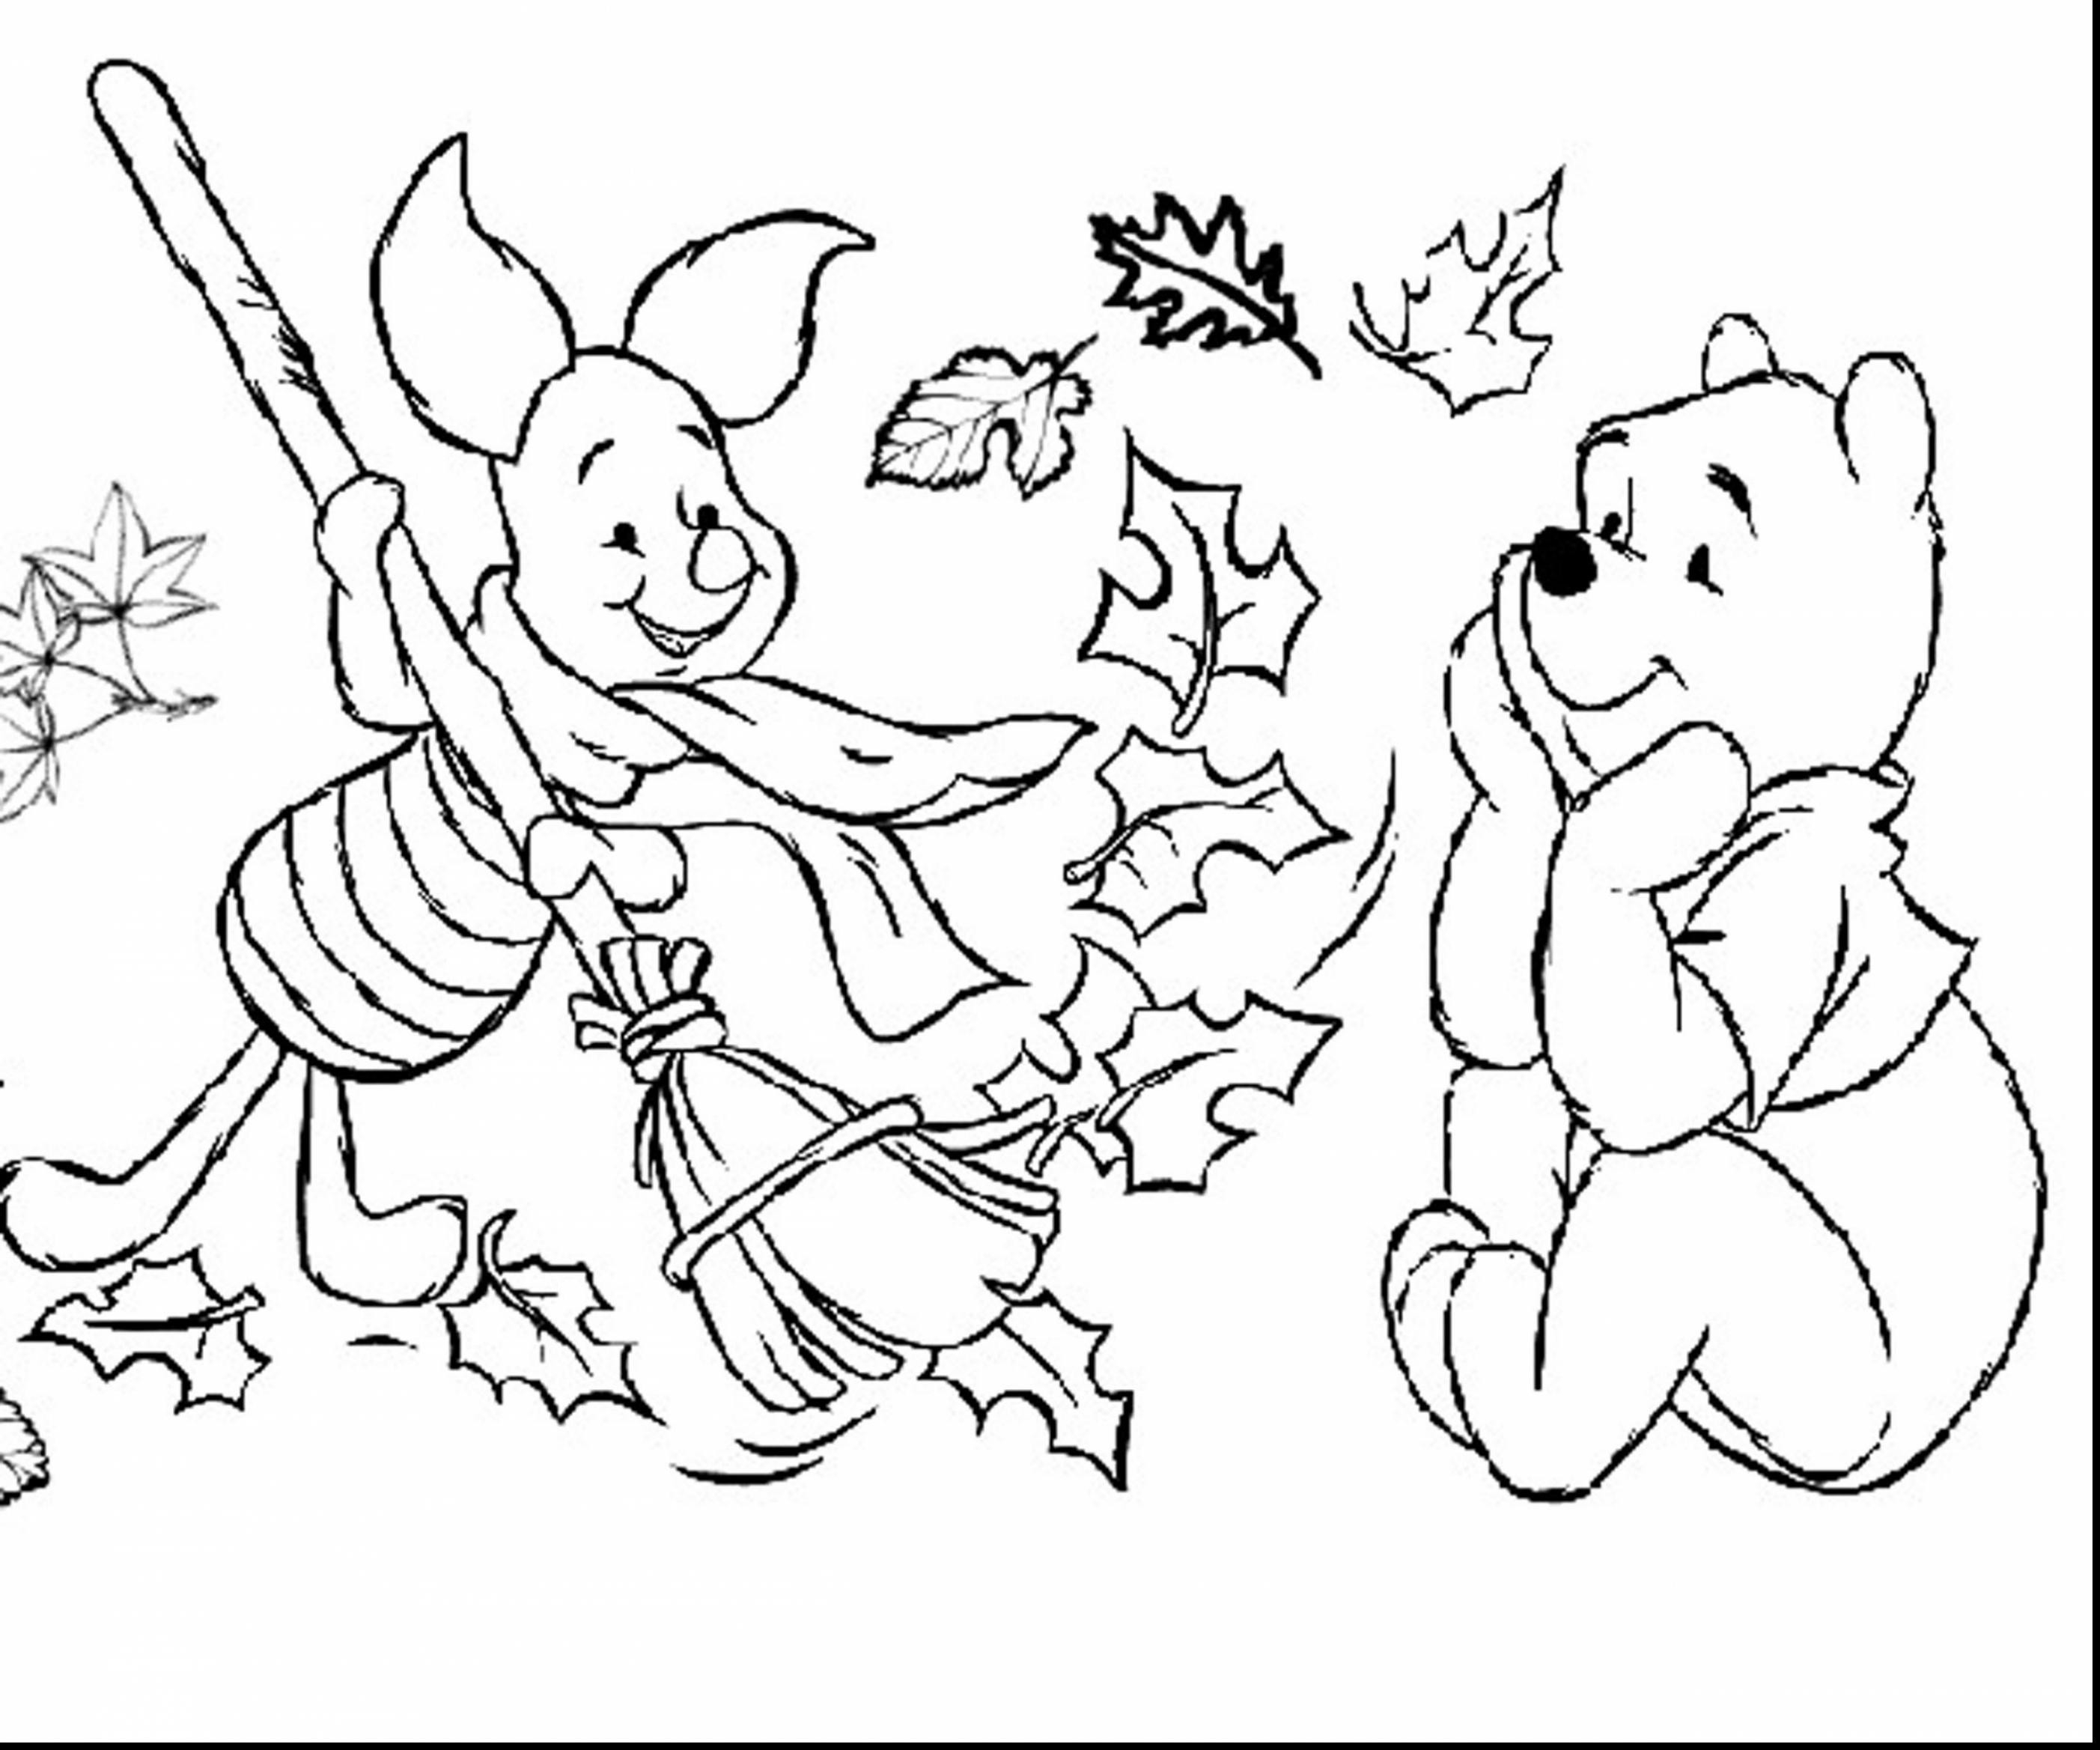 children helping others coloring pages Download-Children Helping Each Other Coloring Pages 11-h